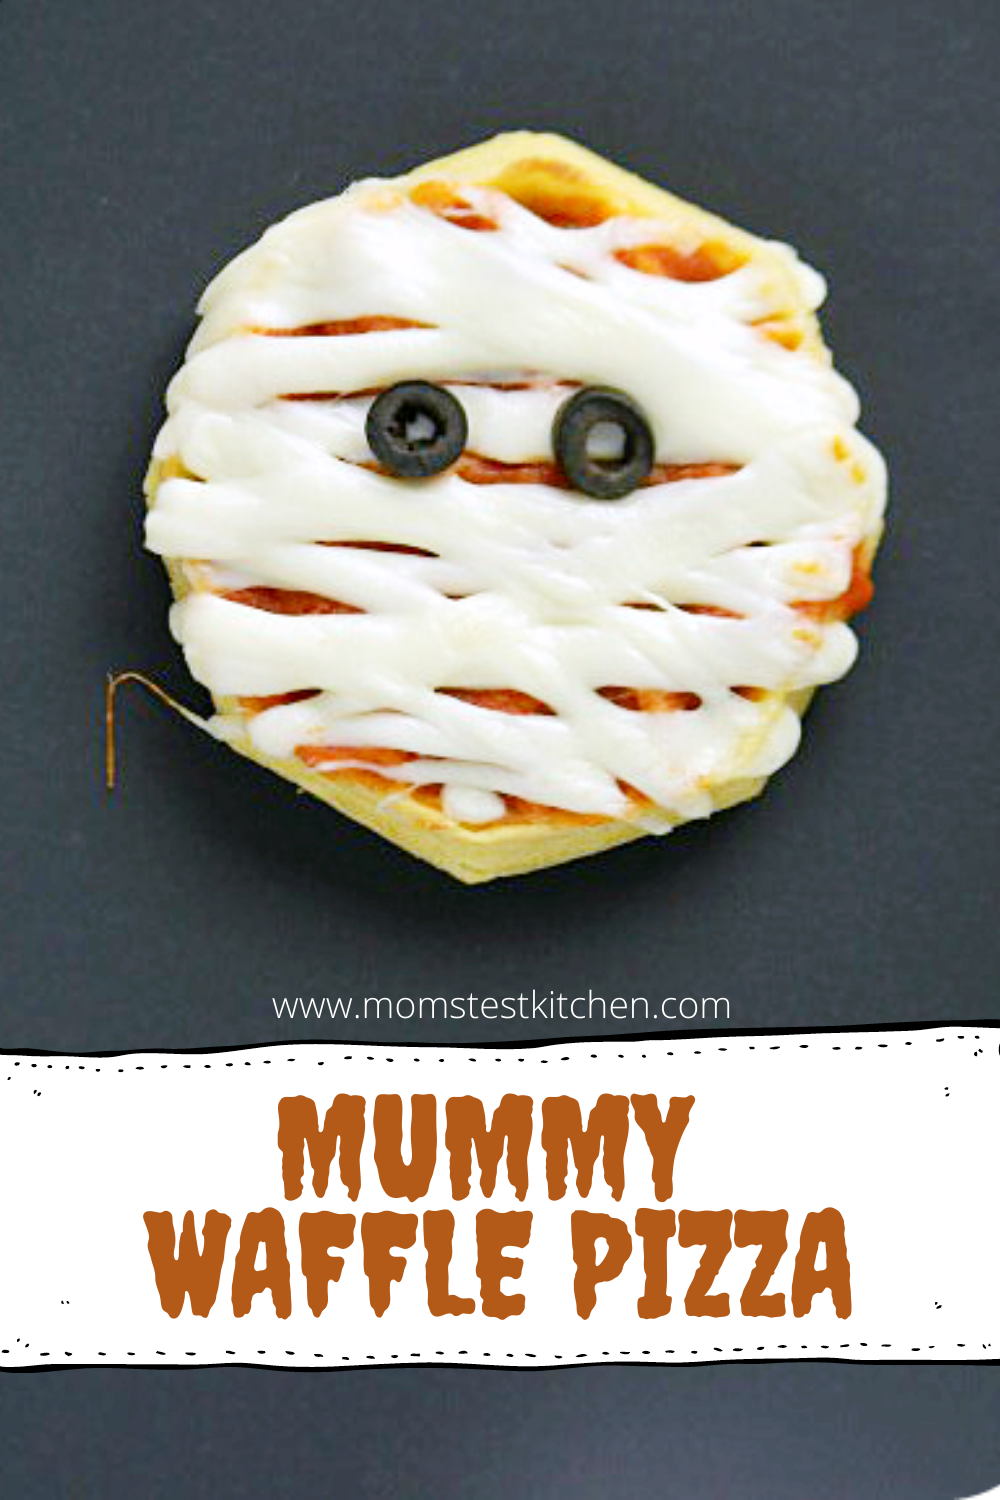 Mummy Waffle Pizzas make a great after school snack or even an easy supper for the kids before you head out trick-or-treating!